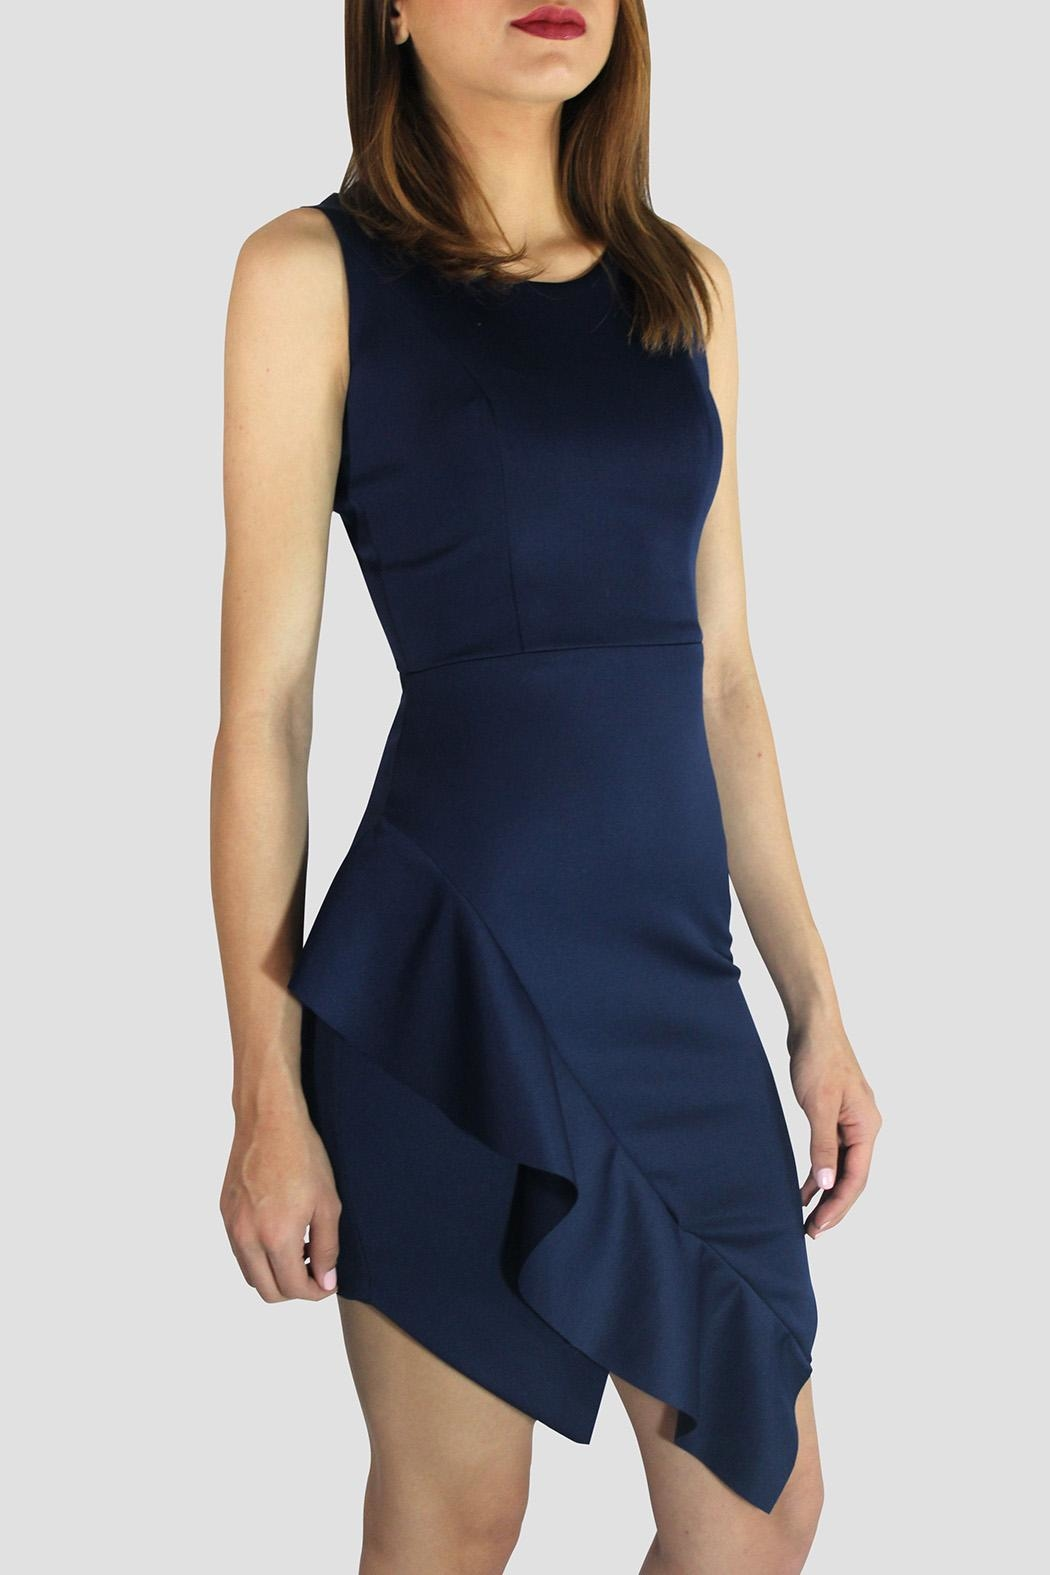 SoZu Asymmetric End Dress - Front Full Image